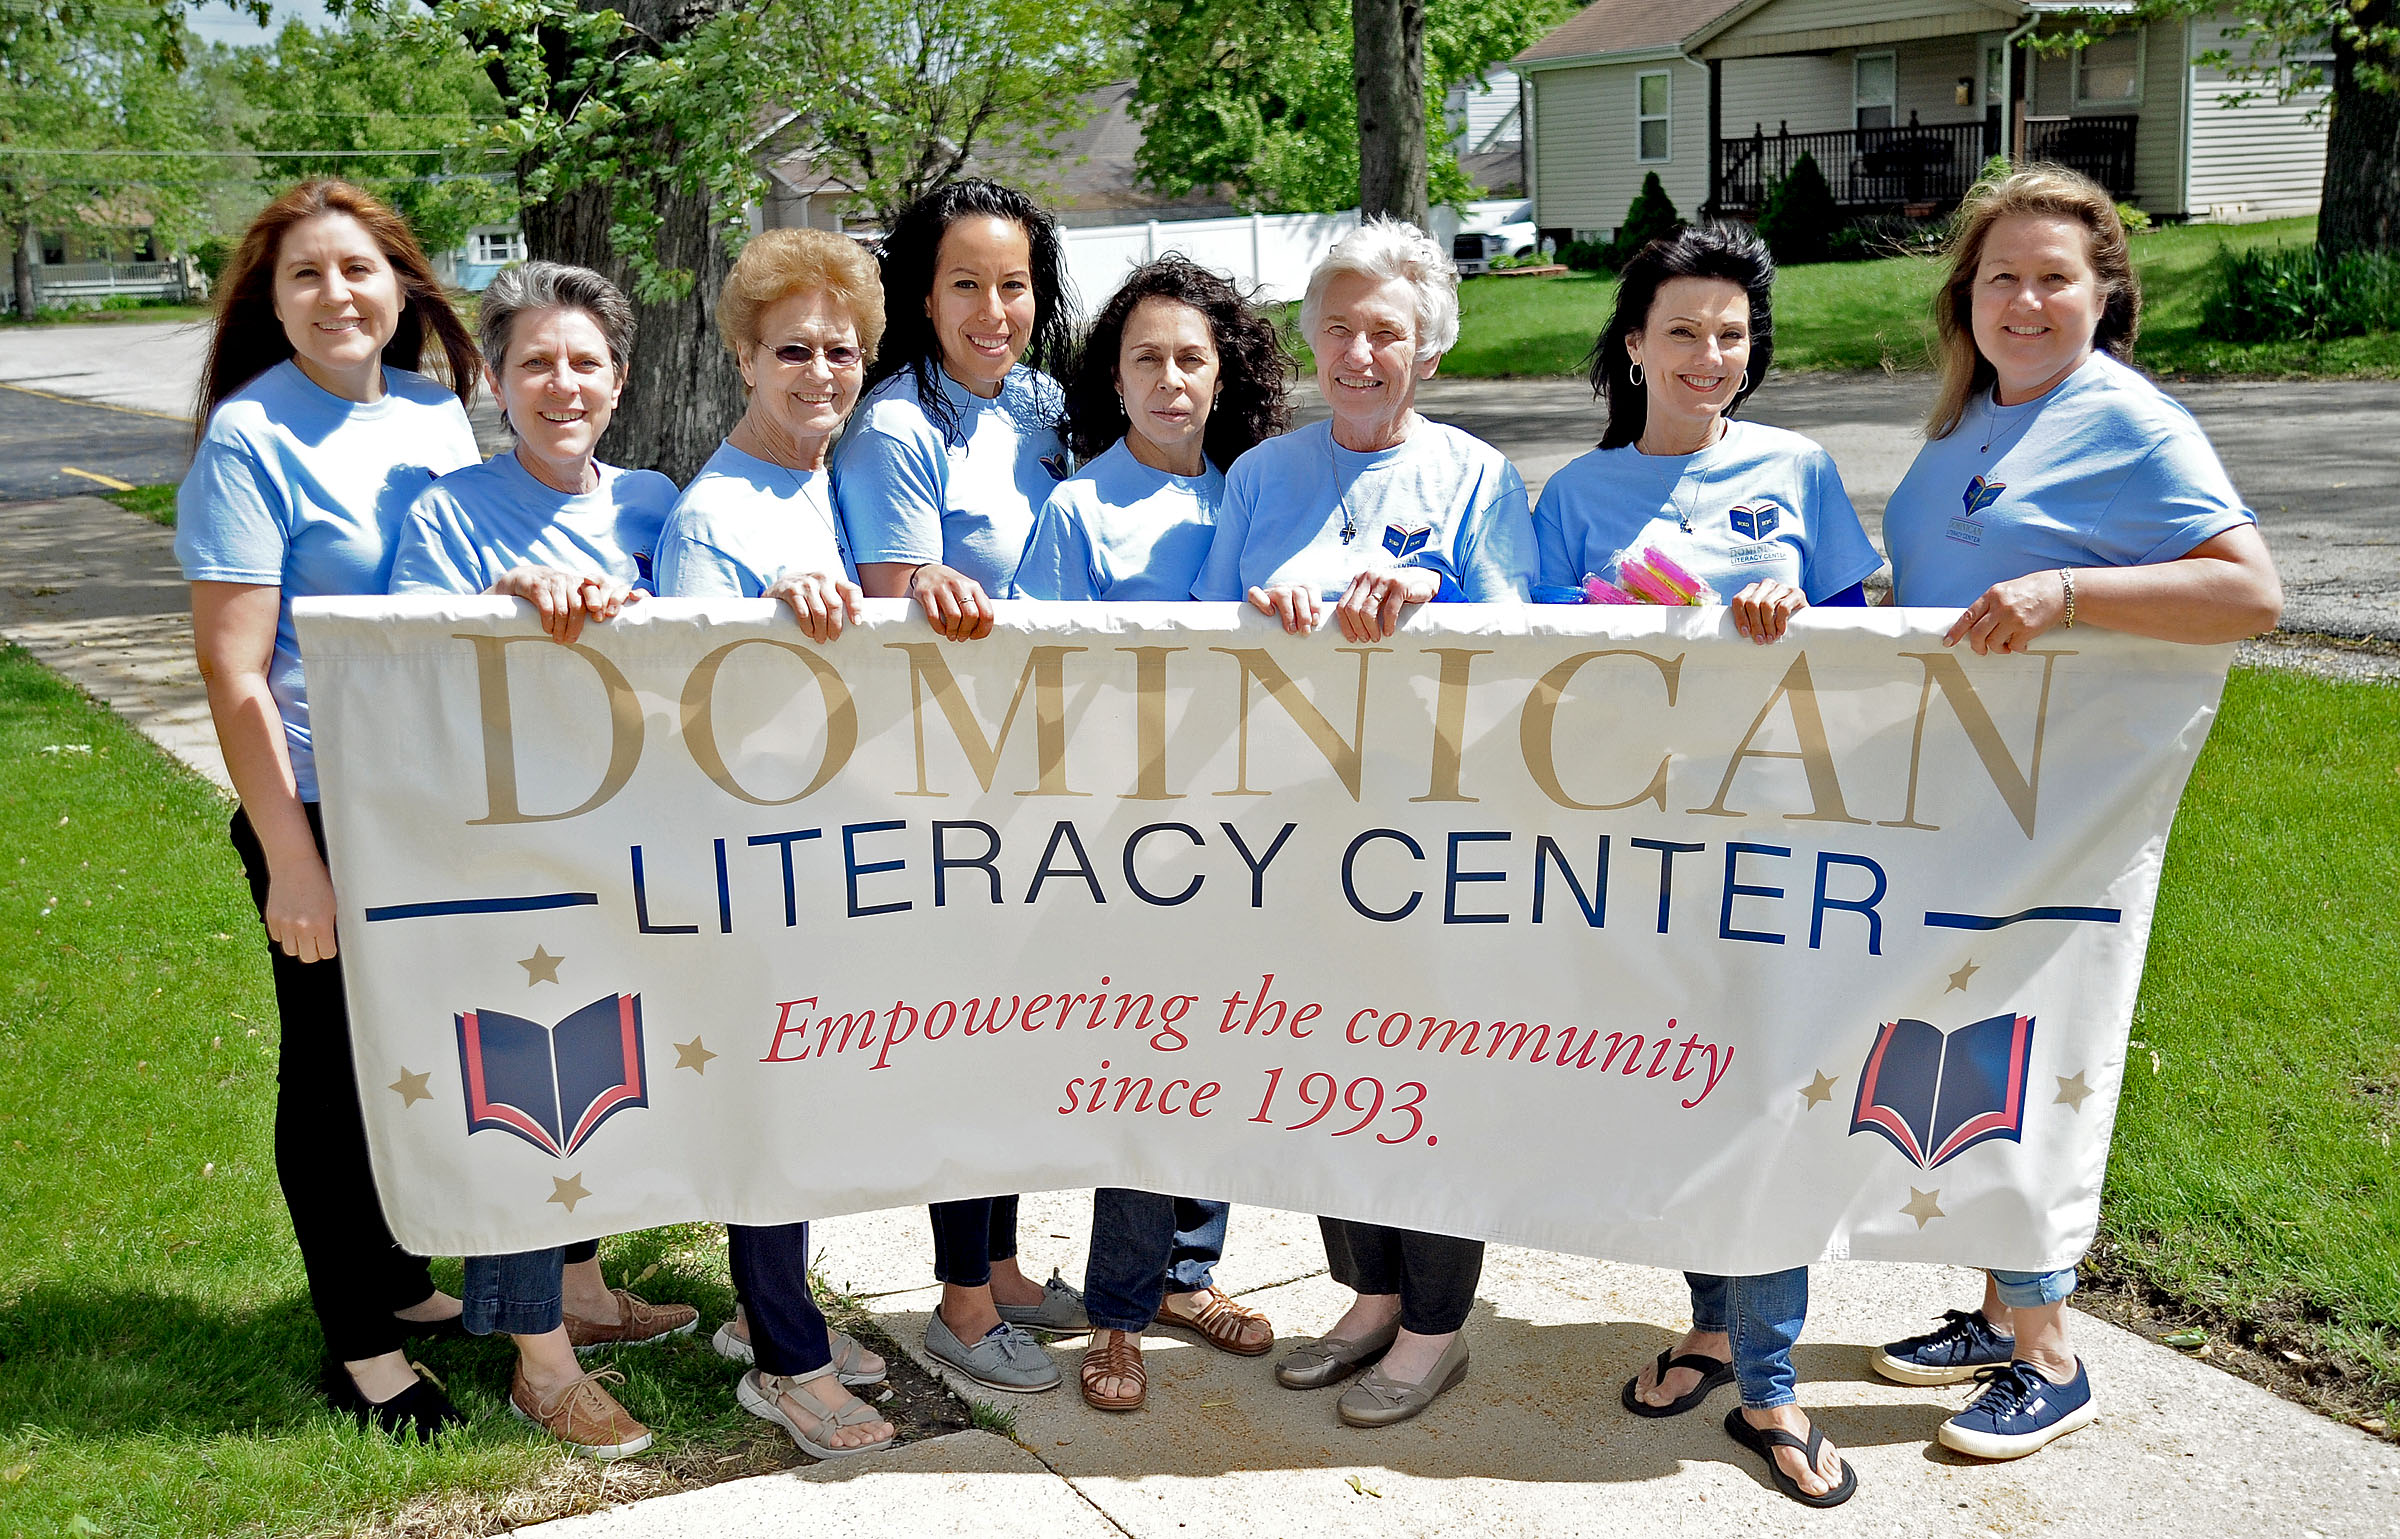 Staff and volunteers from the Dominican Literacy Center in Aurora present their Memorial Day Parade banner, on Wednesday, May 22, 2019. Left to right: Elisa Barocio, Alison Brzezinski, Sister Jane Beckman, Dalila Alegria, Maria Dominguez, Sister Kathleen